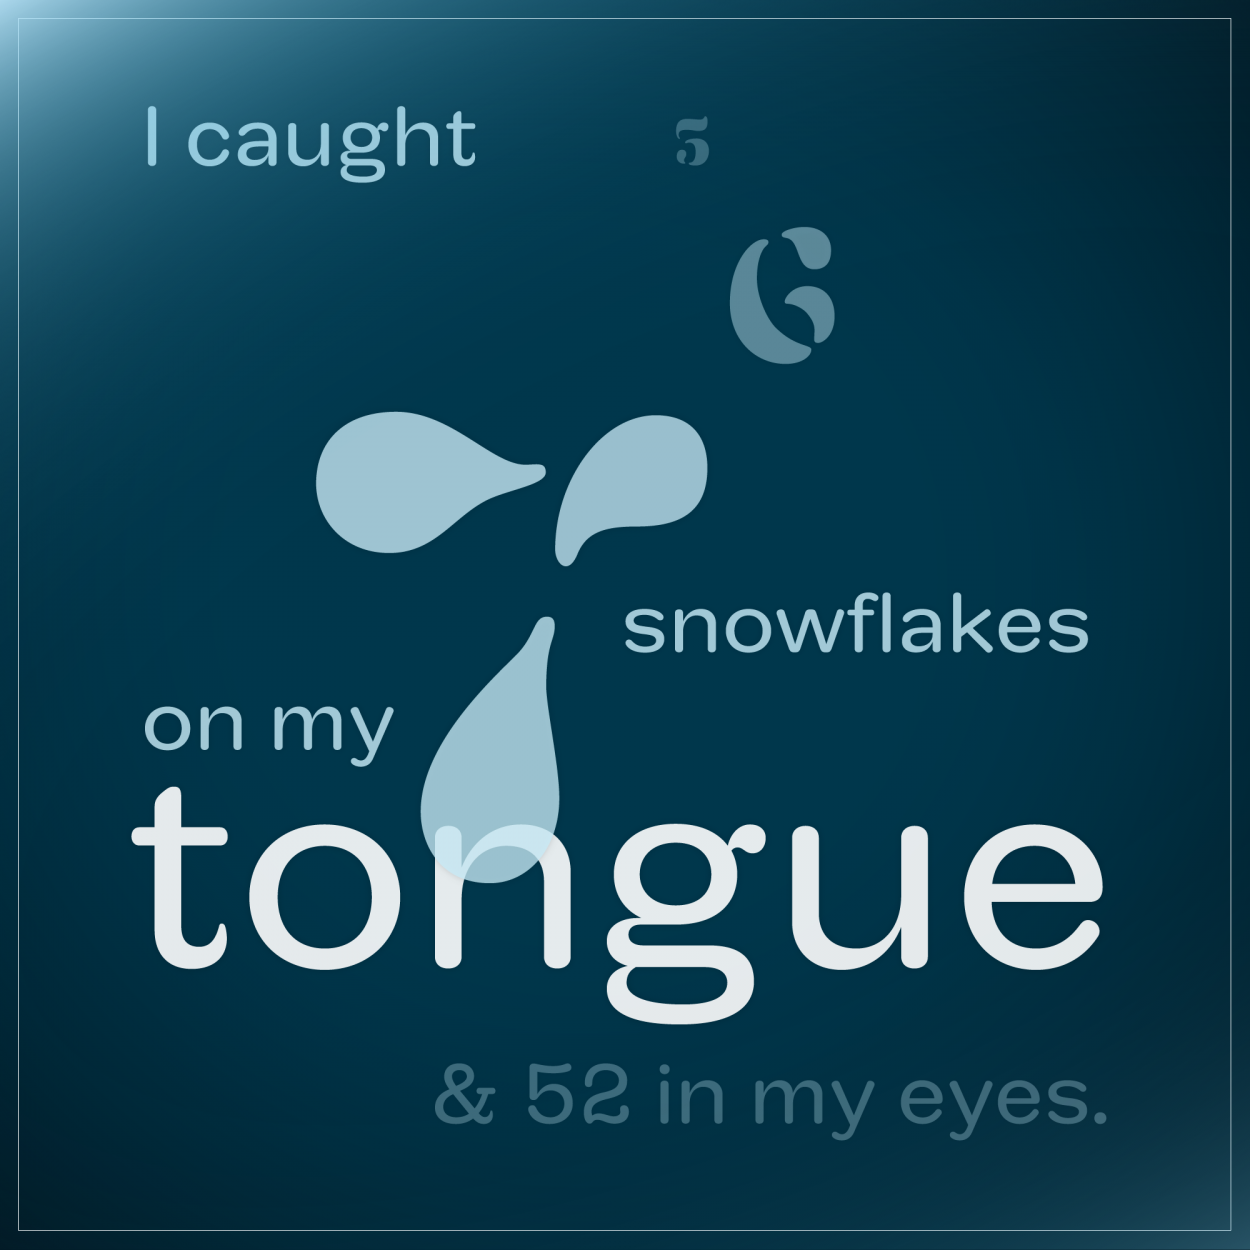 i caught 5, 6, 7 snowflakes on my toung & 52 in my eyes.